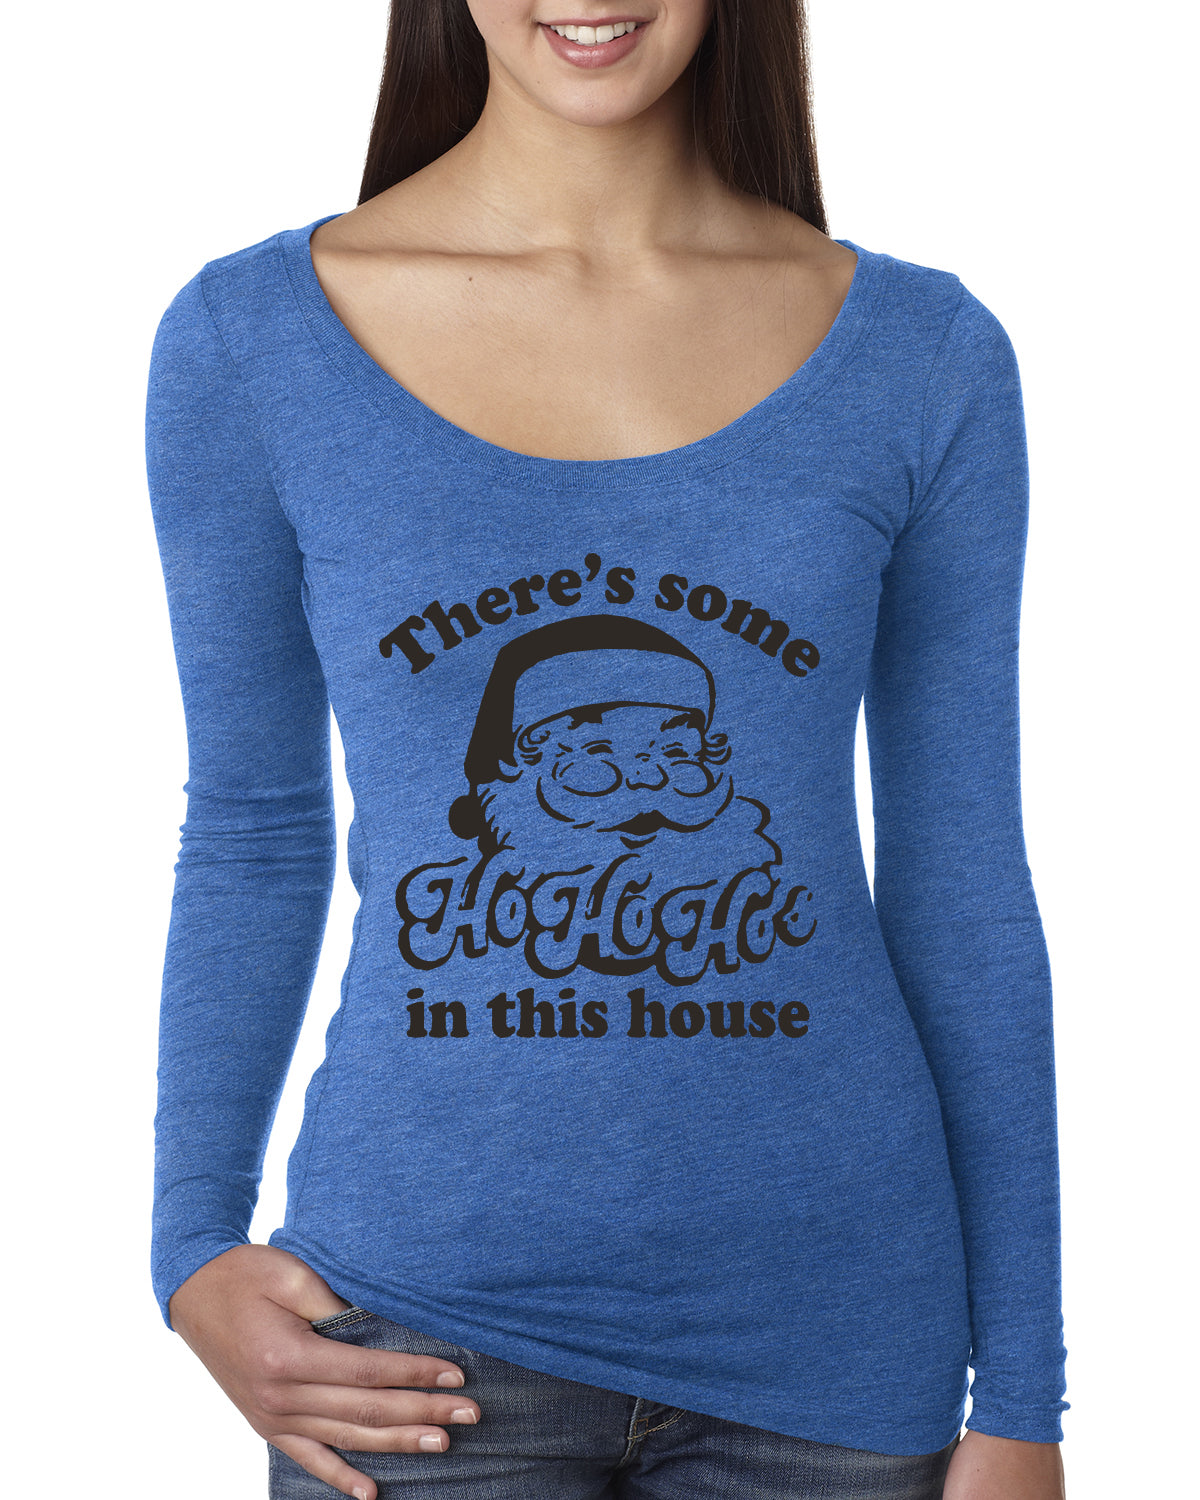 Theres some Ho Ho Ho in this House Ugly Christmas Sweater Womens Scoop Long Sleeve Top